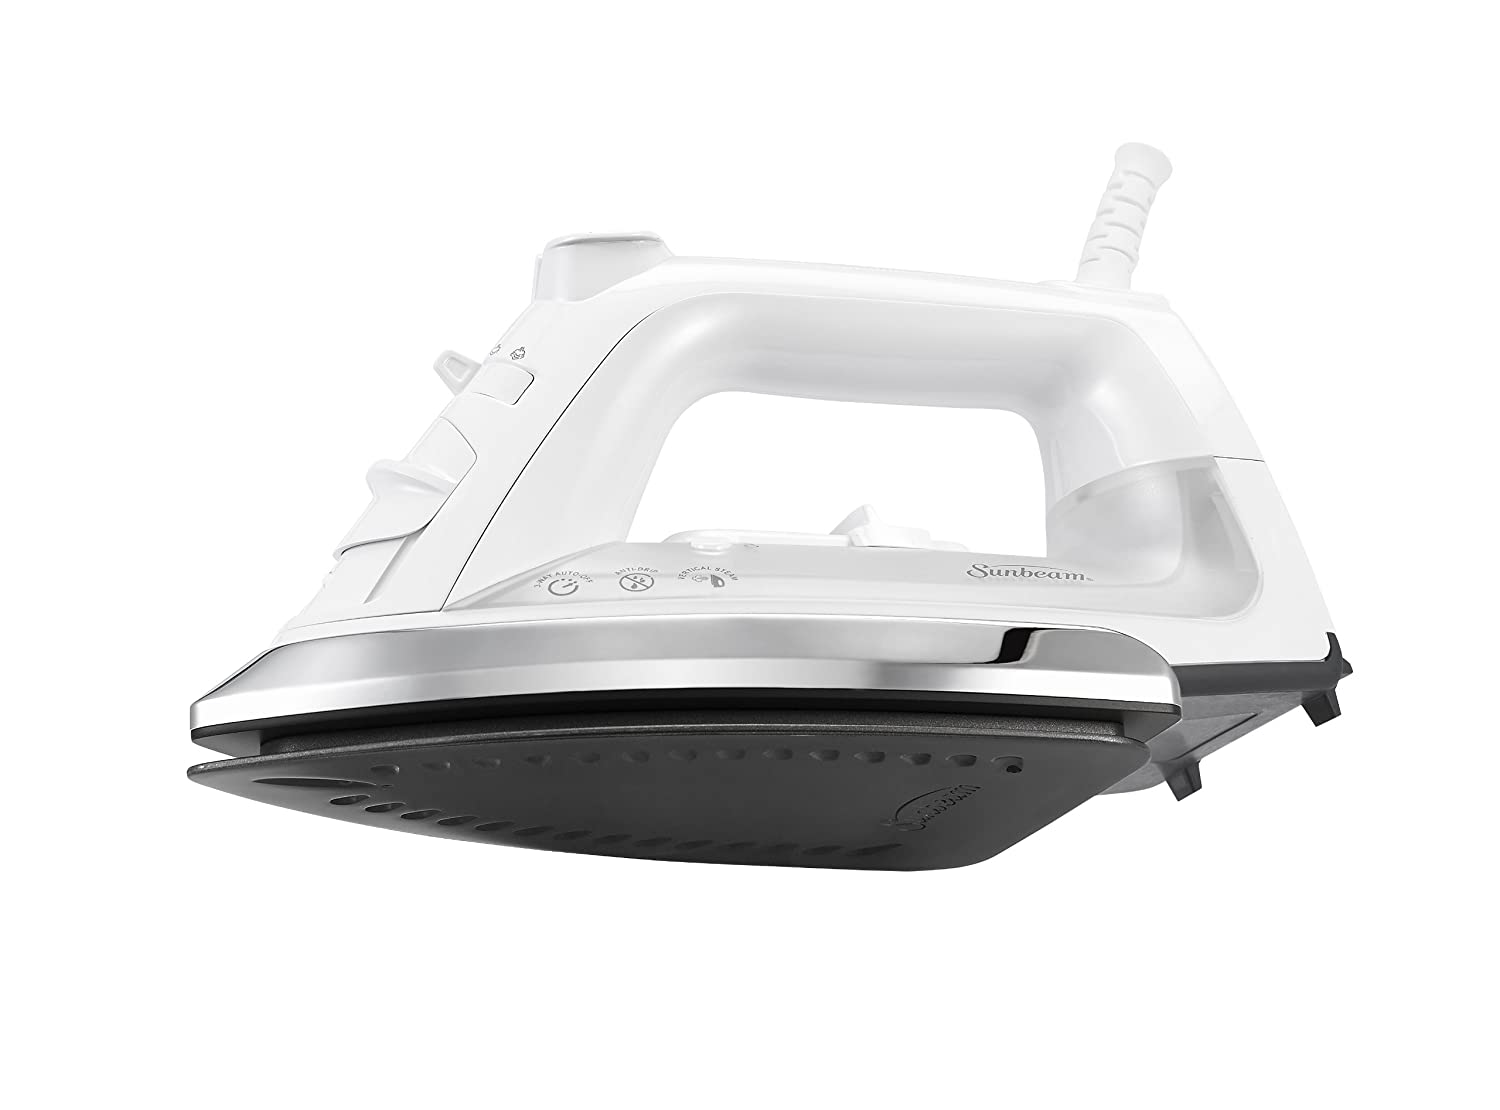 Sunbeam Classic 1200 Watt Mid-size Anti-Drip Non-Stick Soleplate Iron with Shot of Steam Vertical Shot feature and 8 360-degree Swivel Cord, White Clear, GCSBCL-317-000